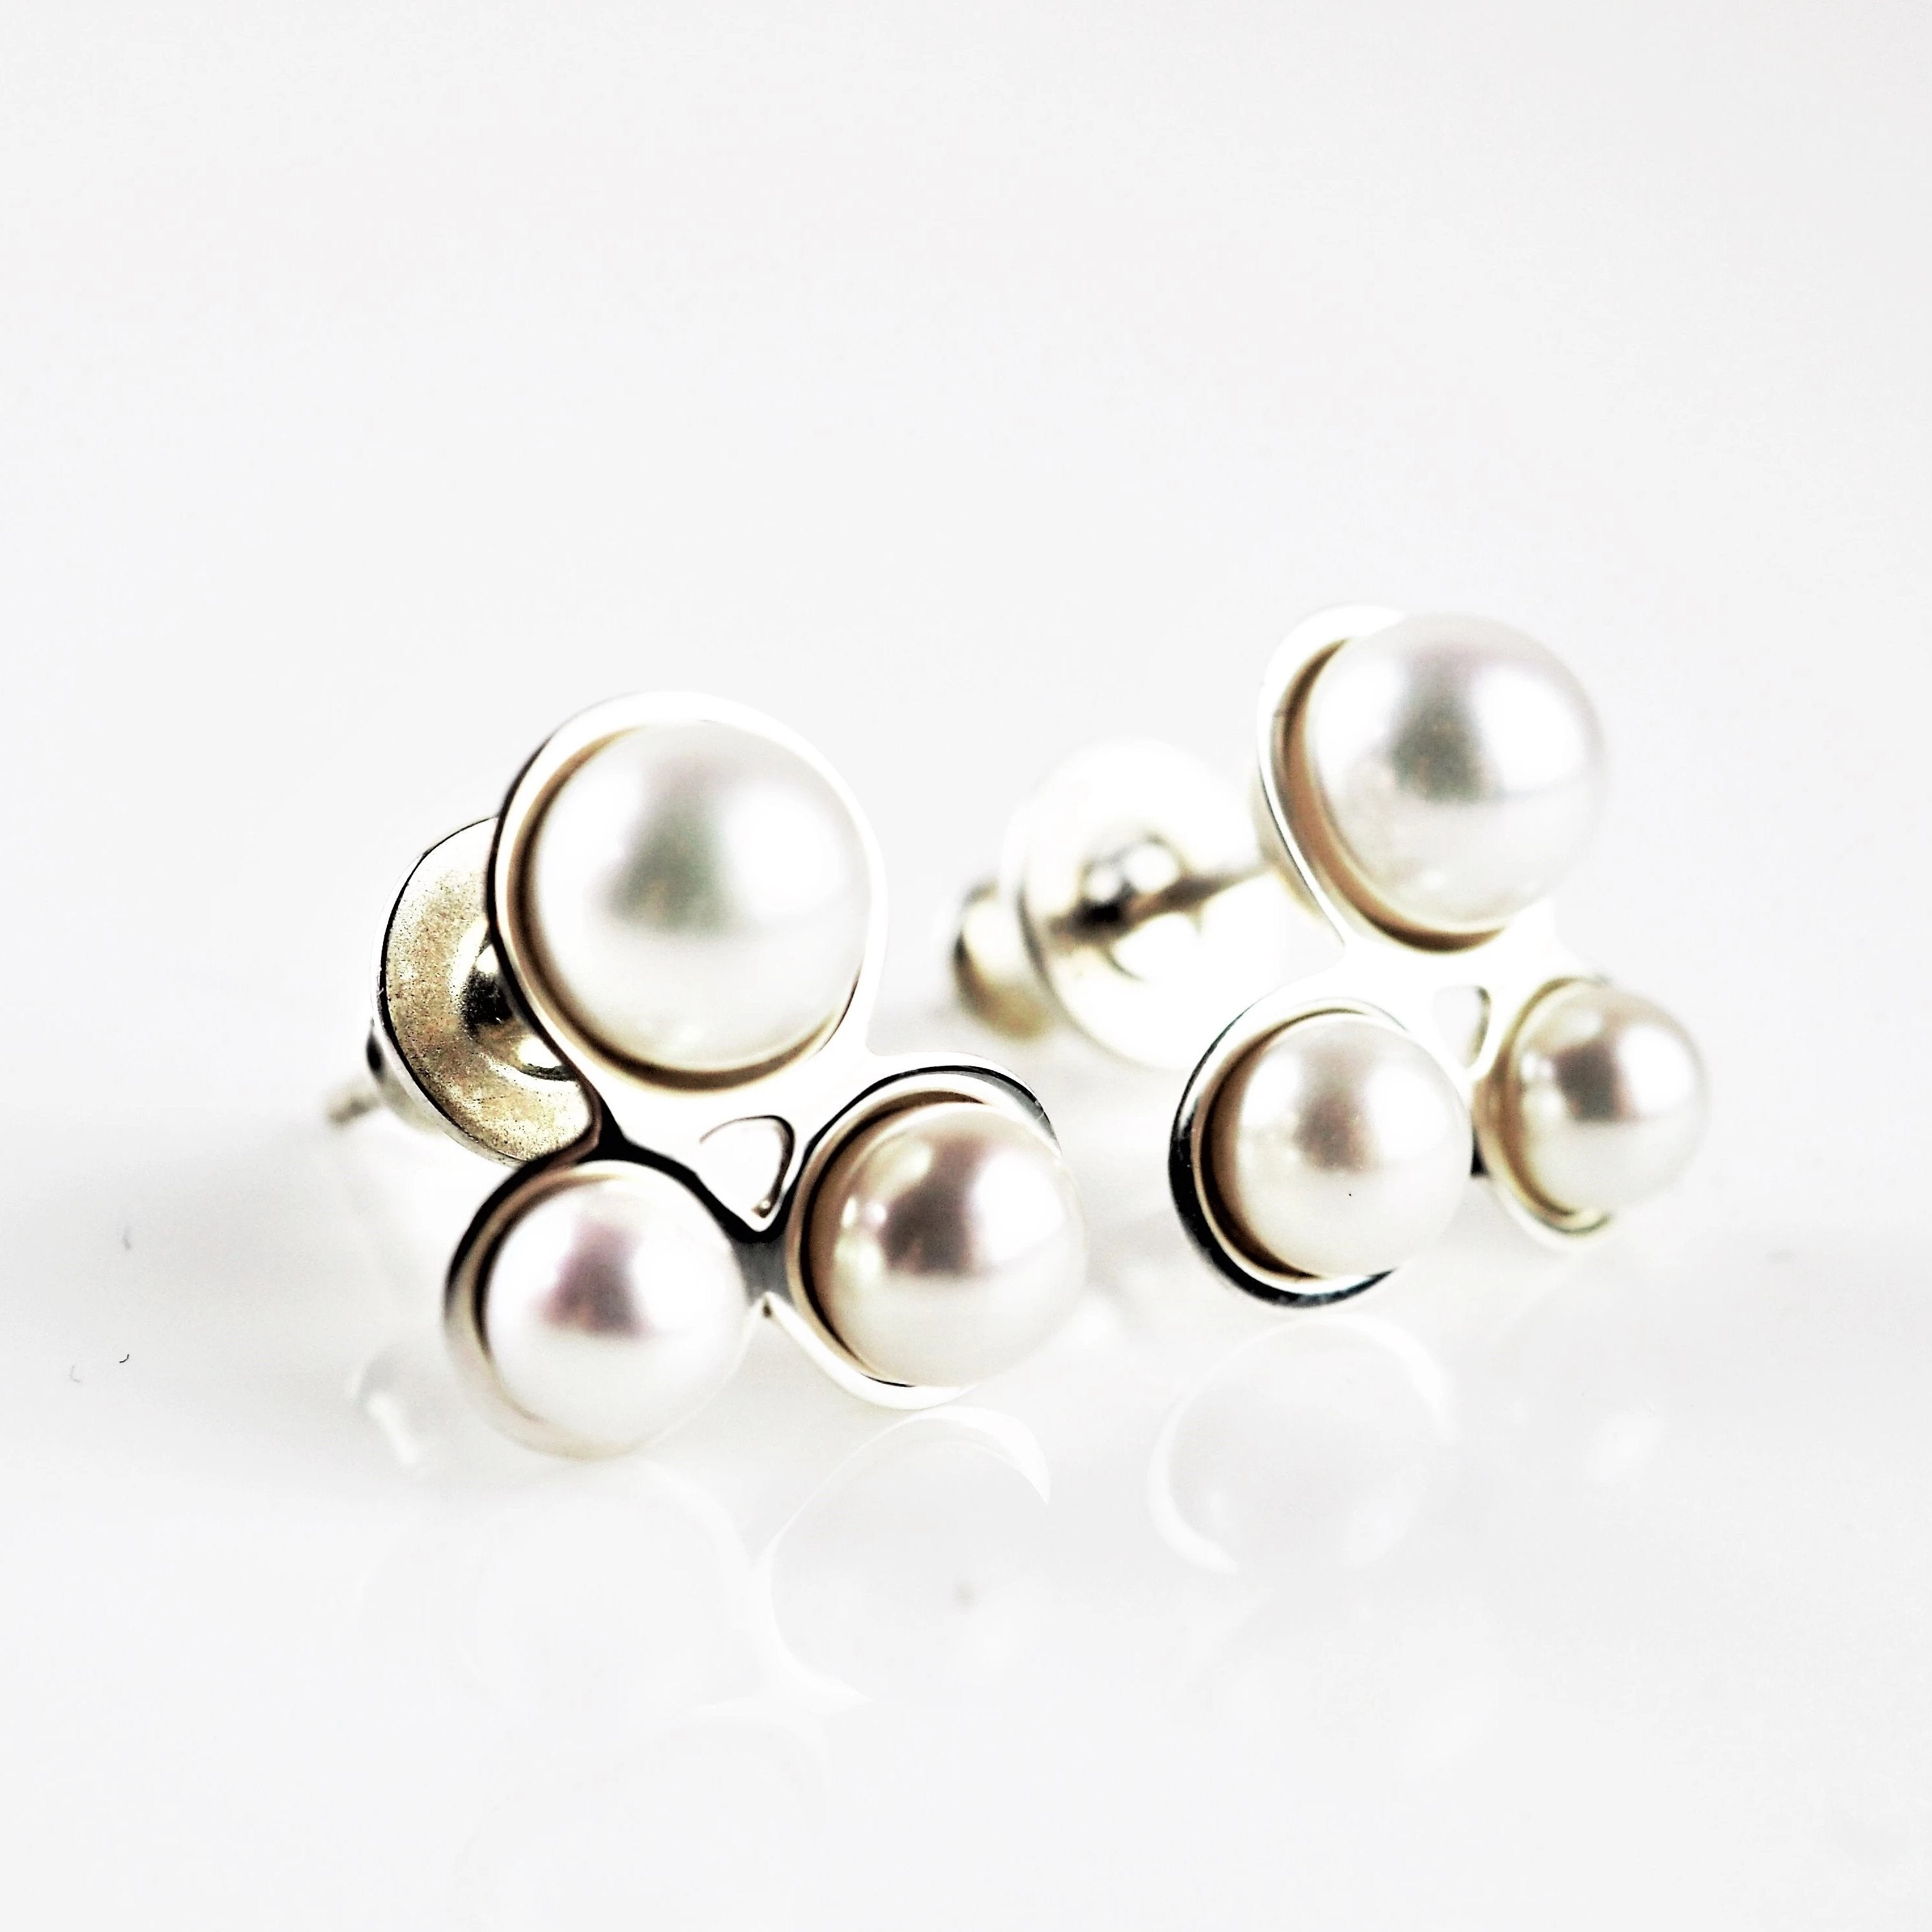 Gilbert, Jenny – Pearl Cluster Earrings | Jenny Gilbert | Primavera Gallery